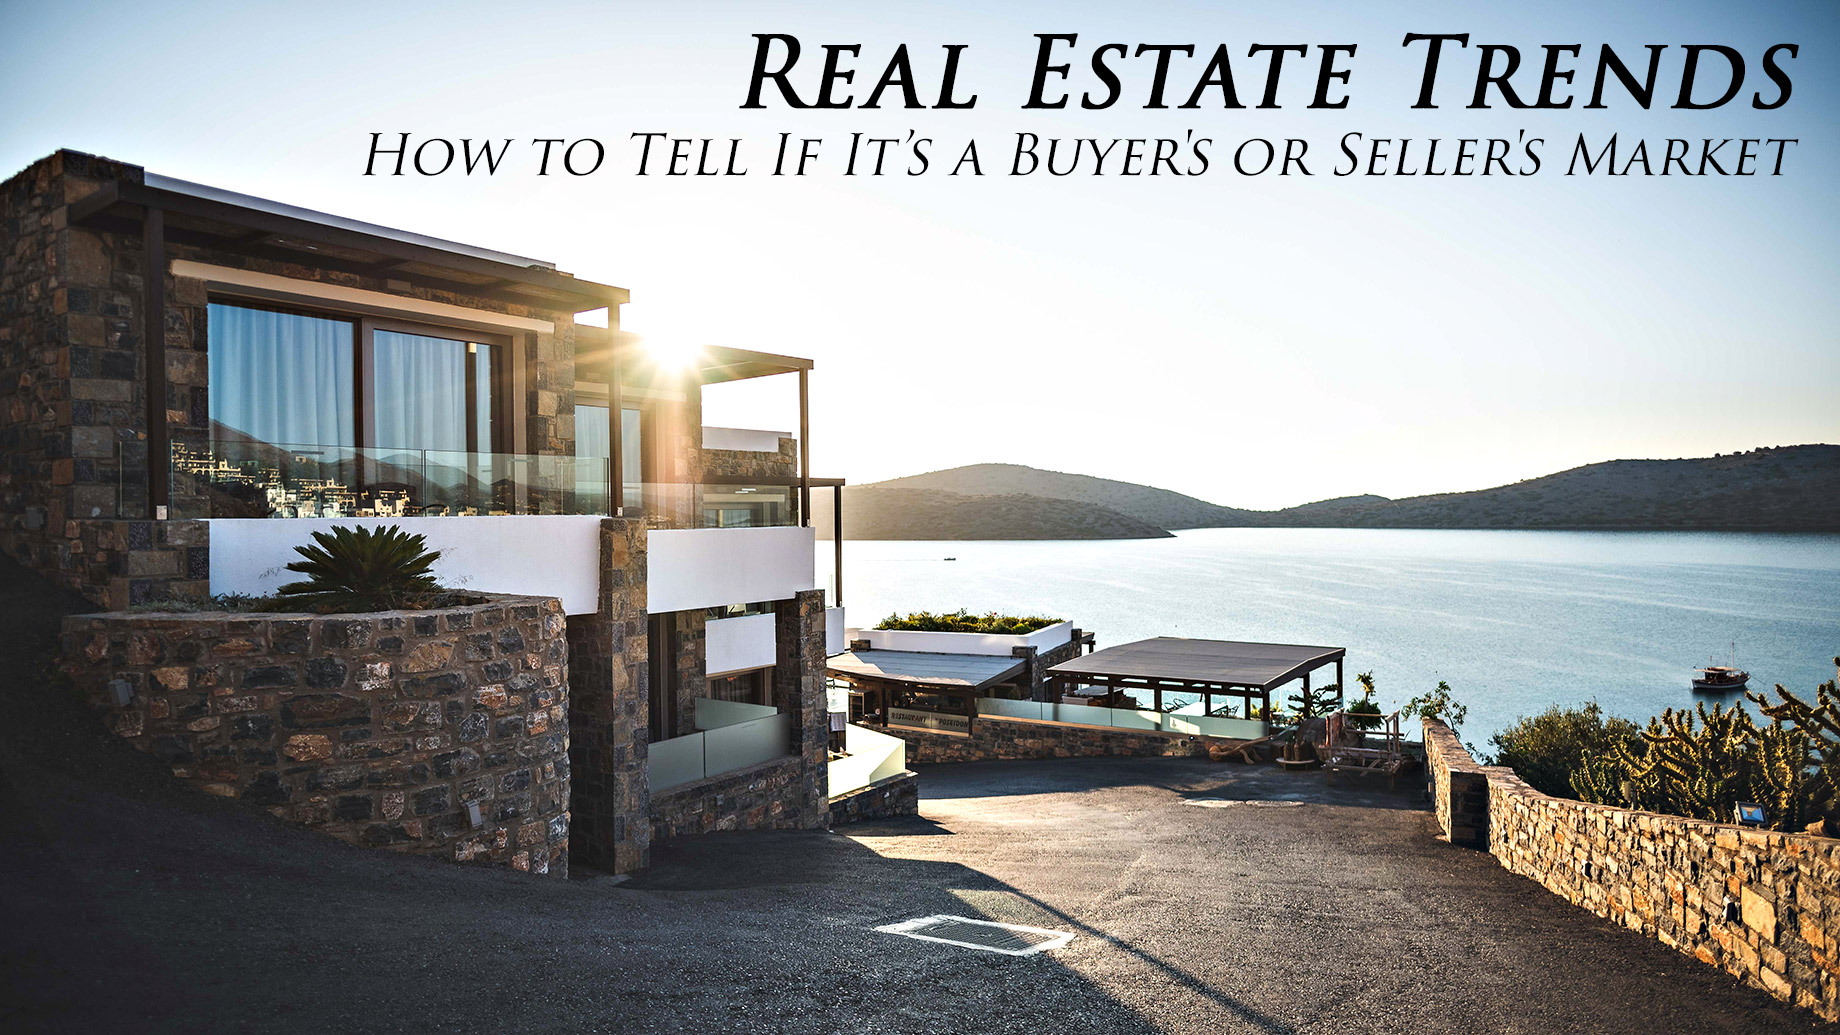 Real Estate Trends - How to Tell If It's a Buyer's or Seller's Market